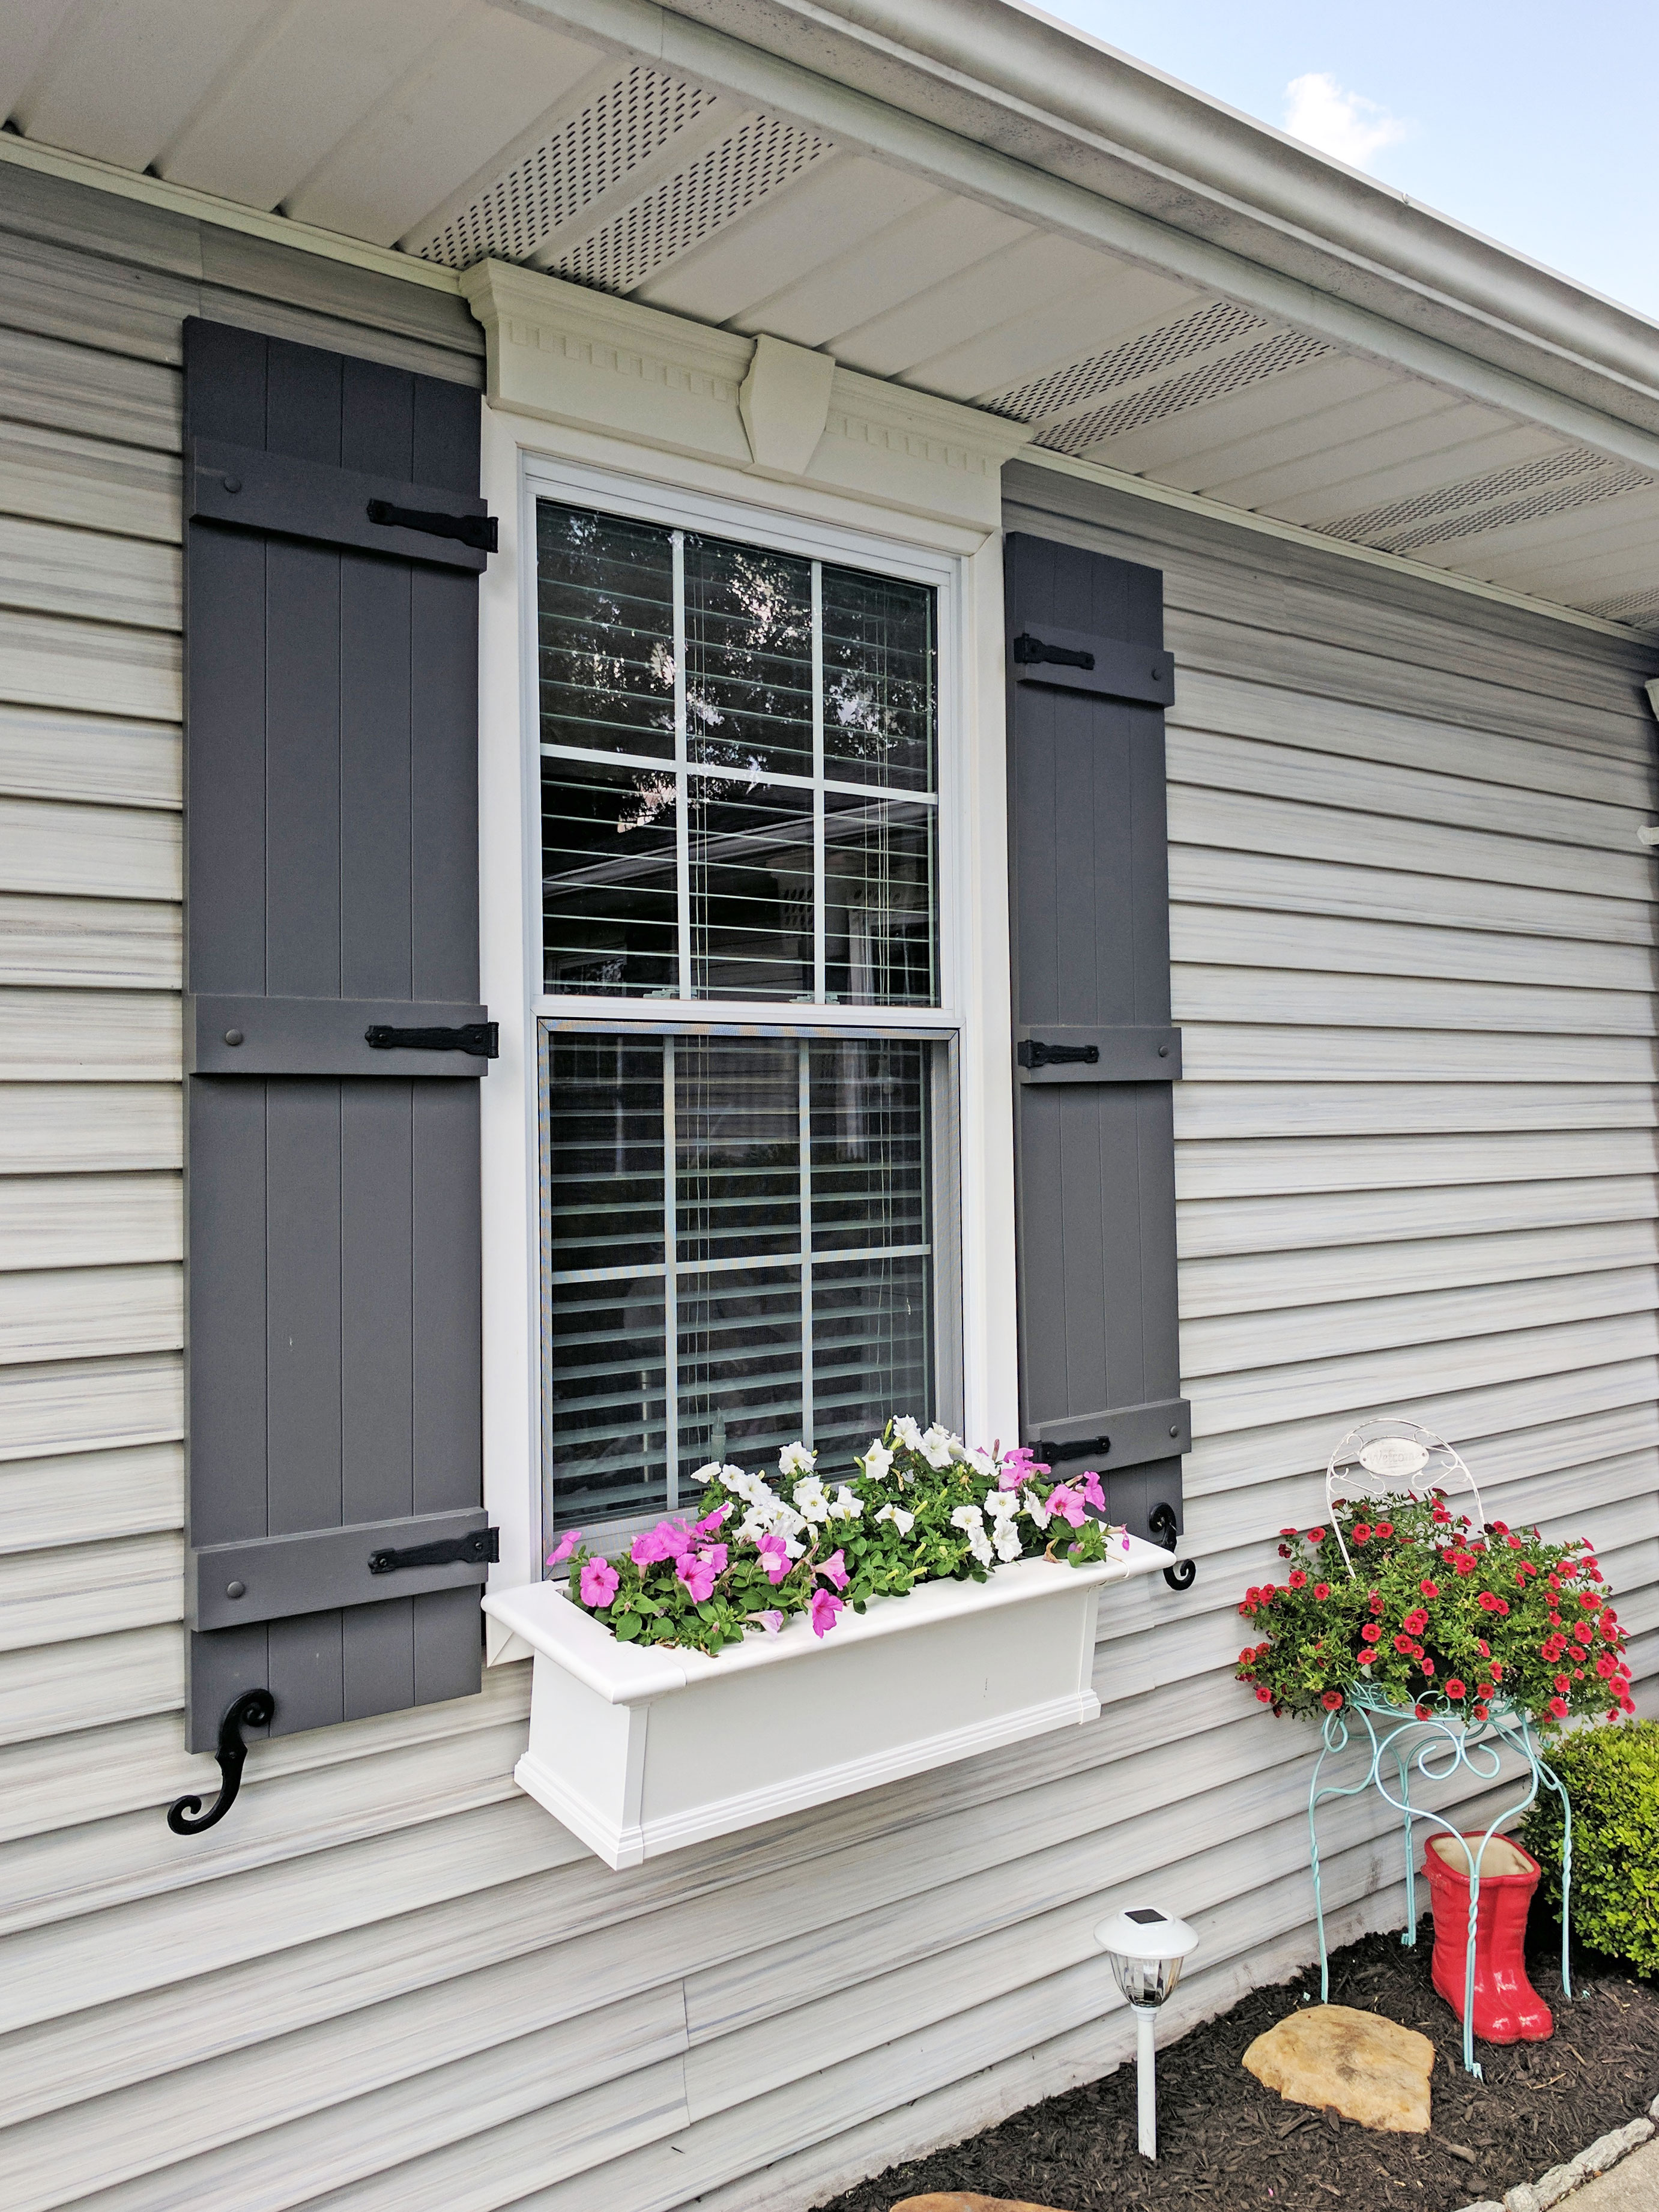 Board N Batten Shutters With Window Box On Ohio Home Architectural Depot